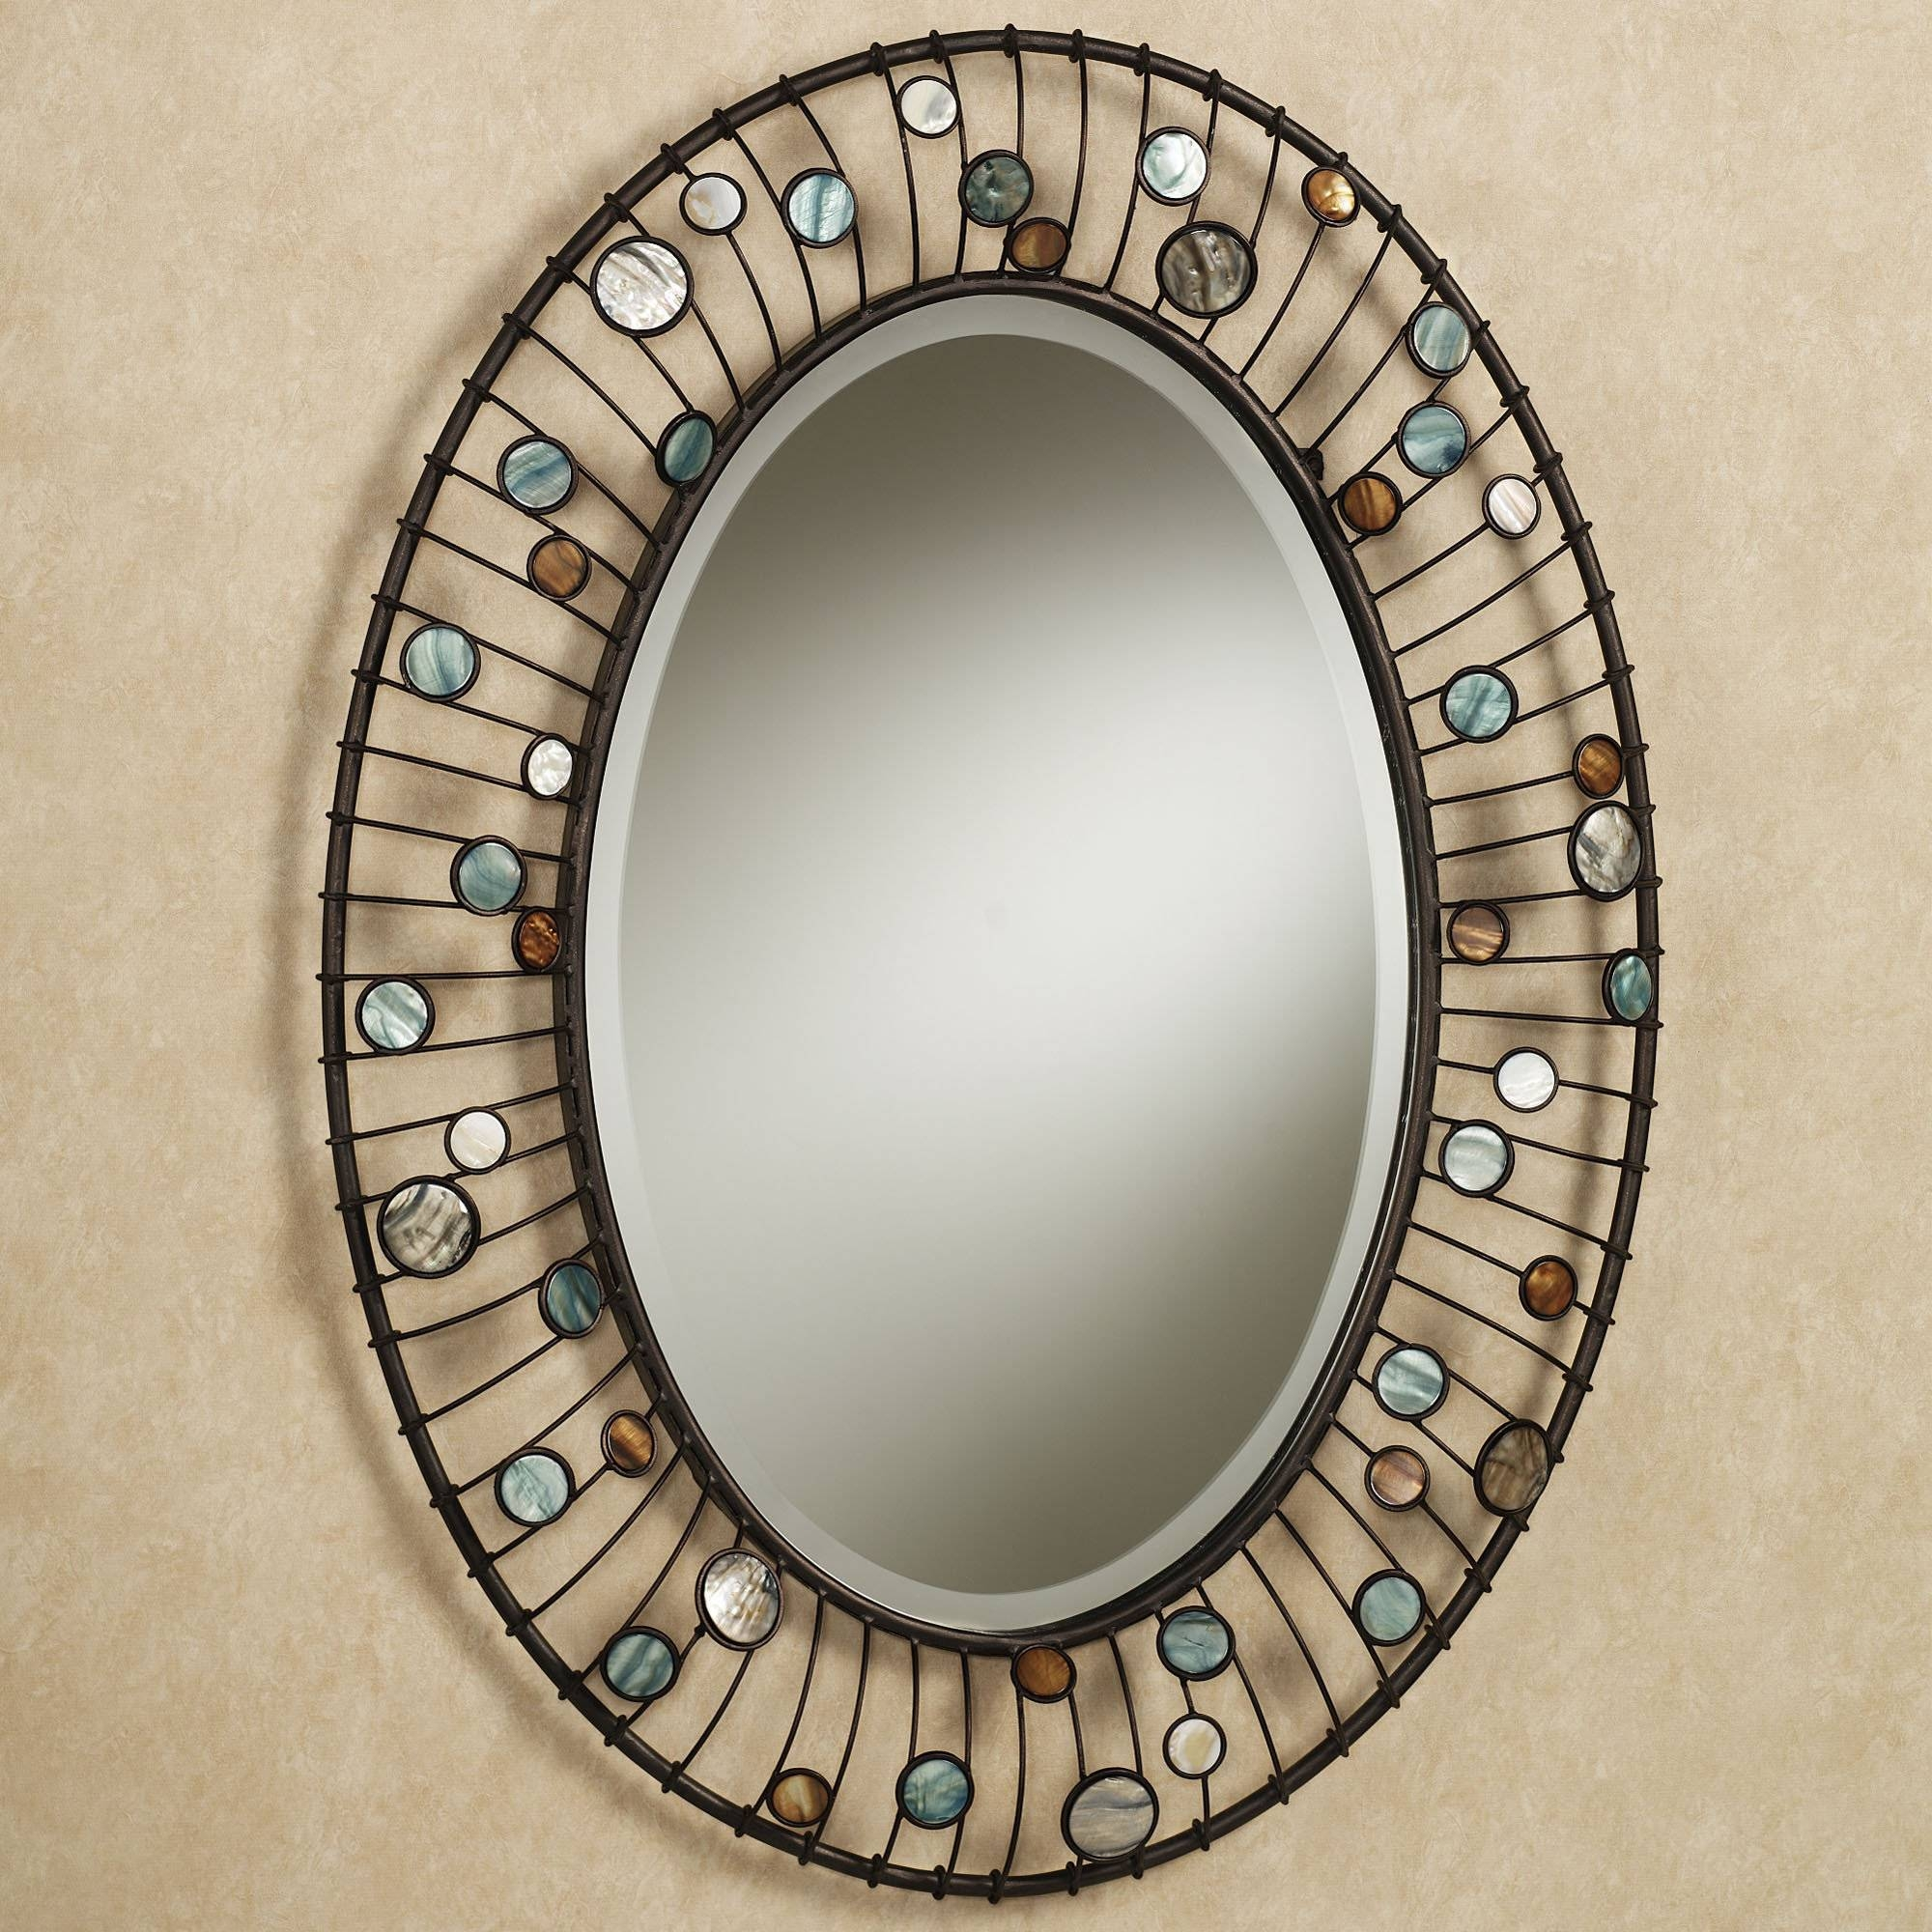 Triple Oval Wall Mirror - Oval Wall Mirror For The Elegant One To pertaining to Triple Oval Wall Mirrors (Image 22 of 25)